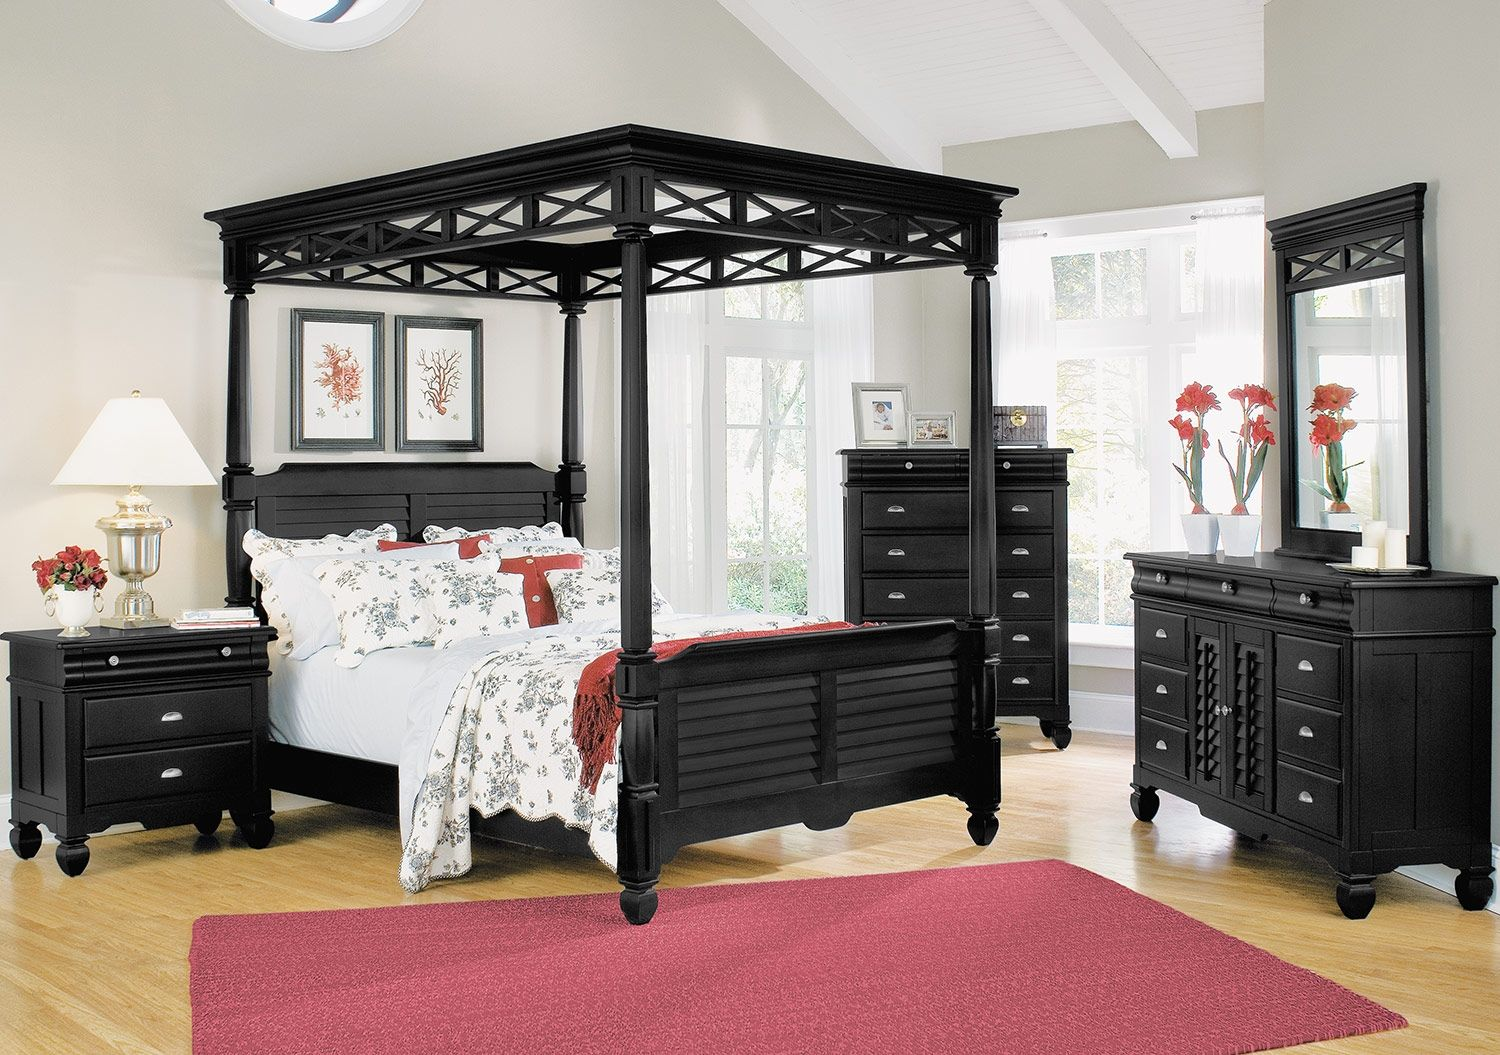 American Signature Furniture  Plantation Cove Black Canopy Bedroom My next bedroomset Queen Bed